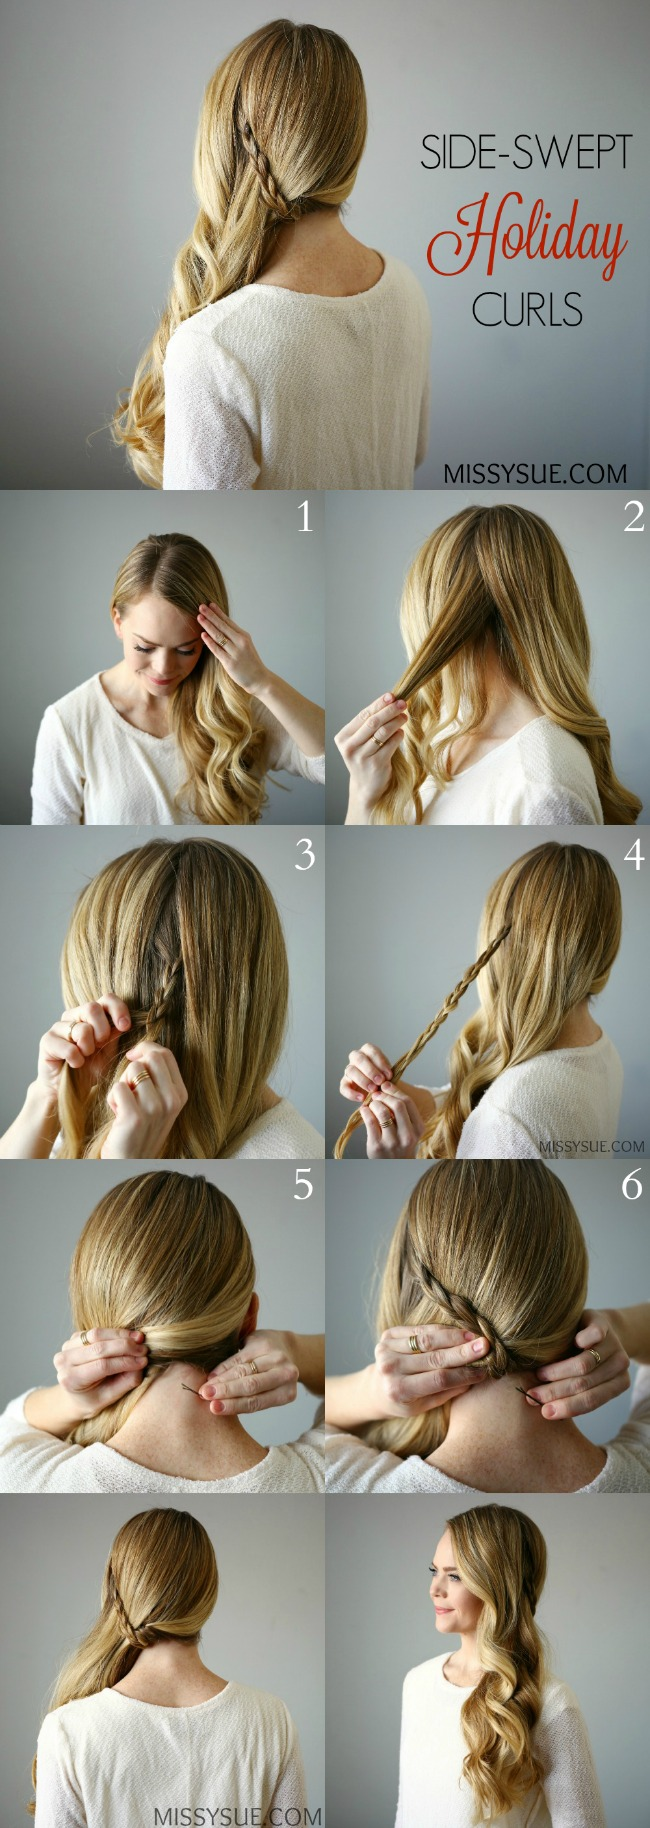 side-swept-holiday-curls-tutorial